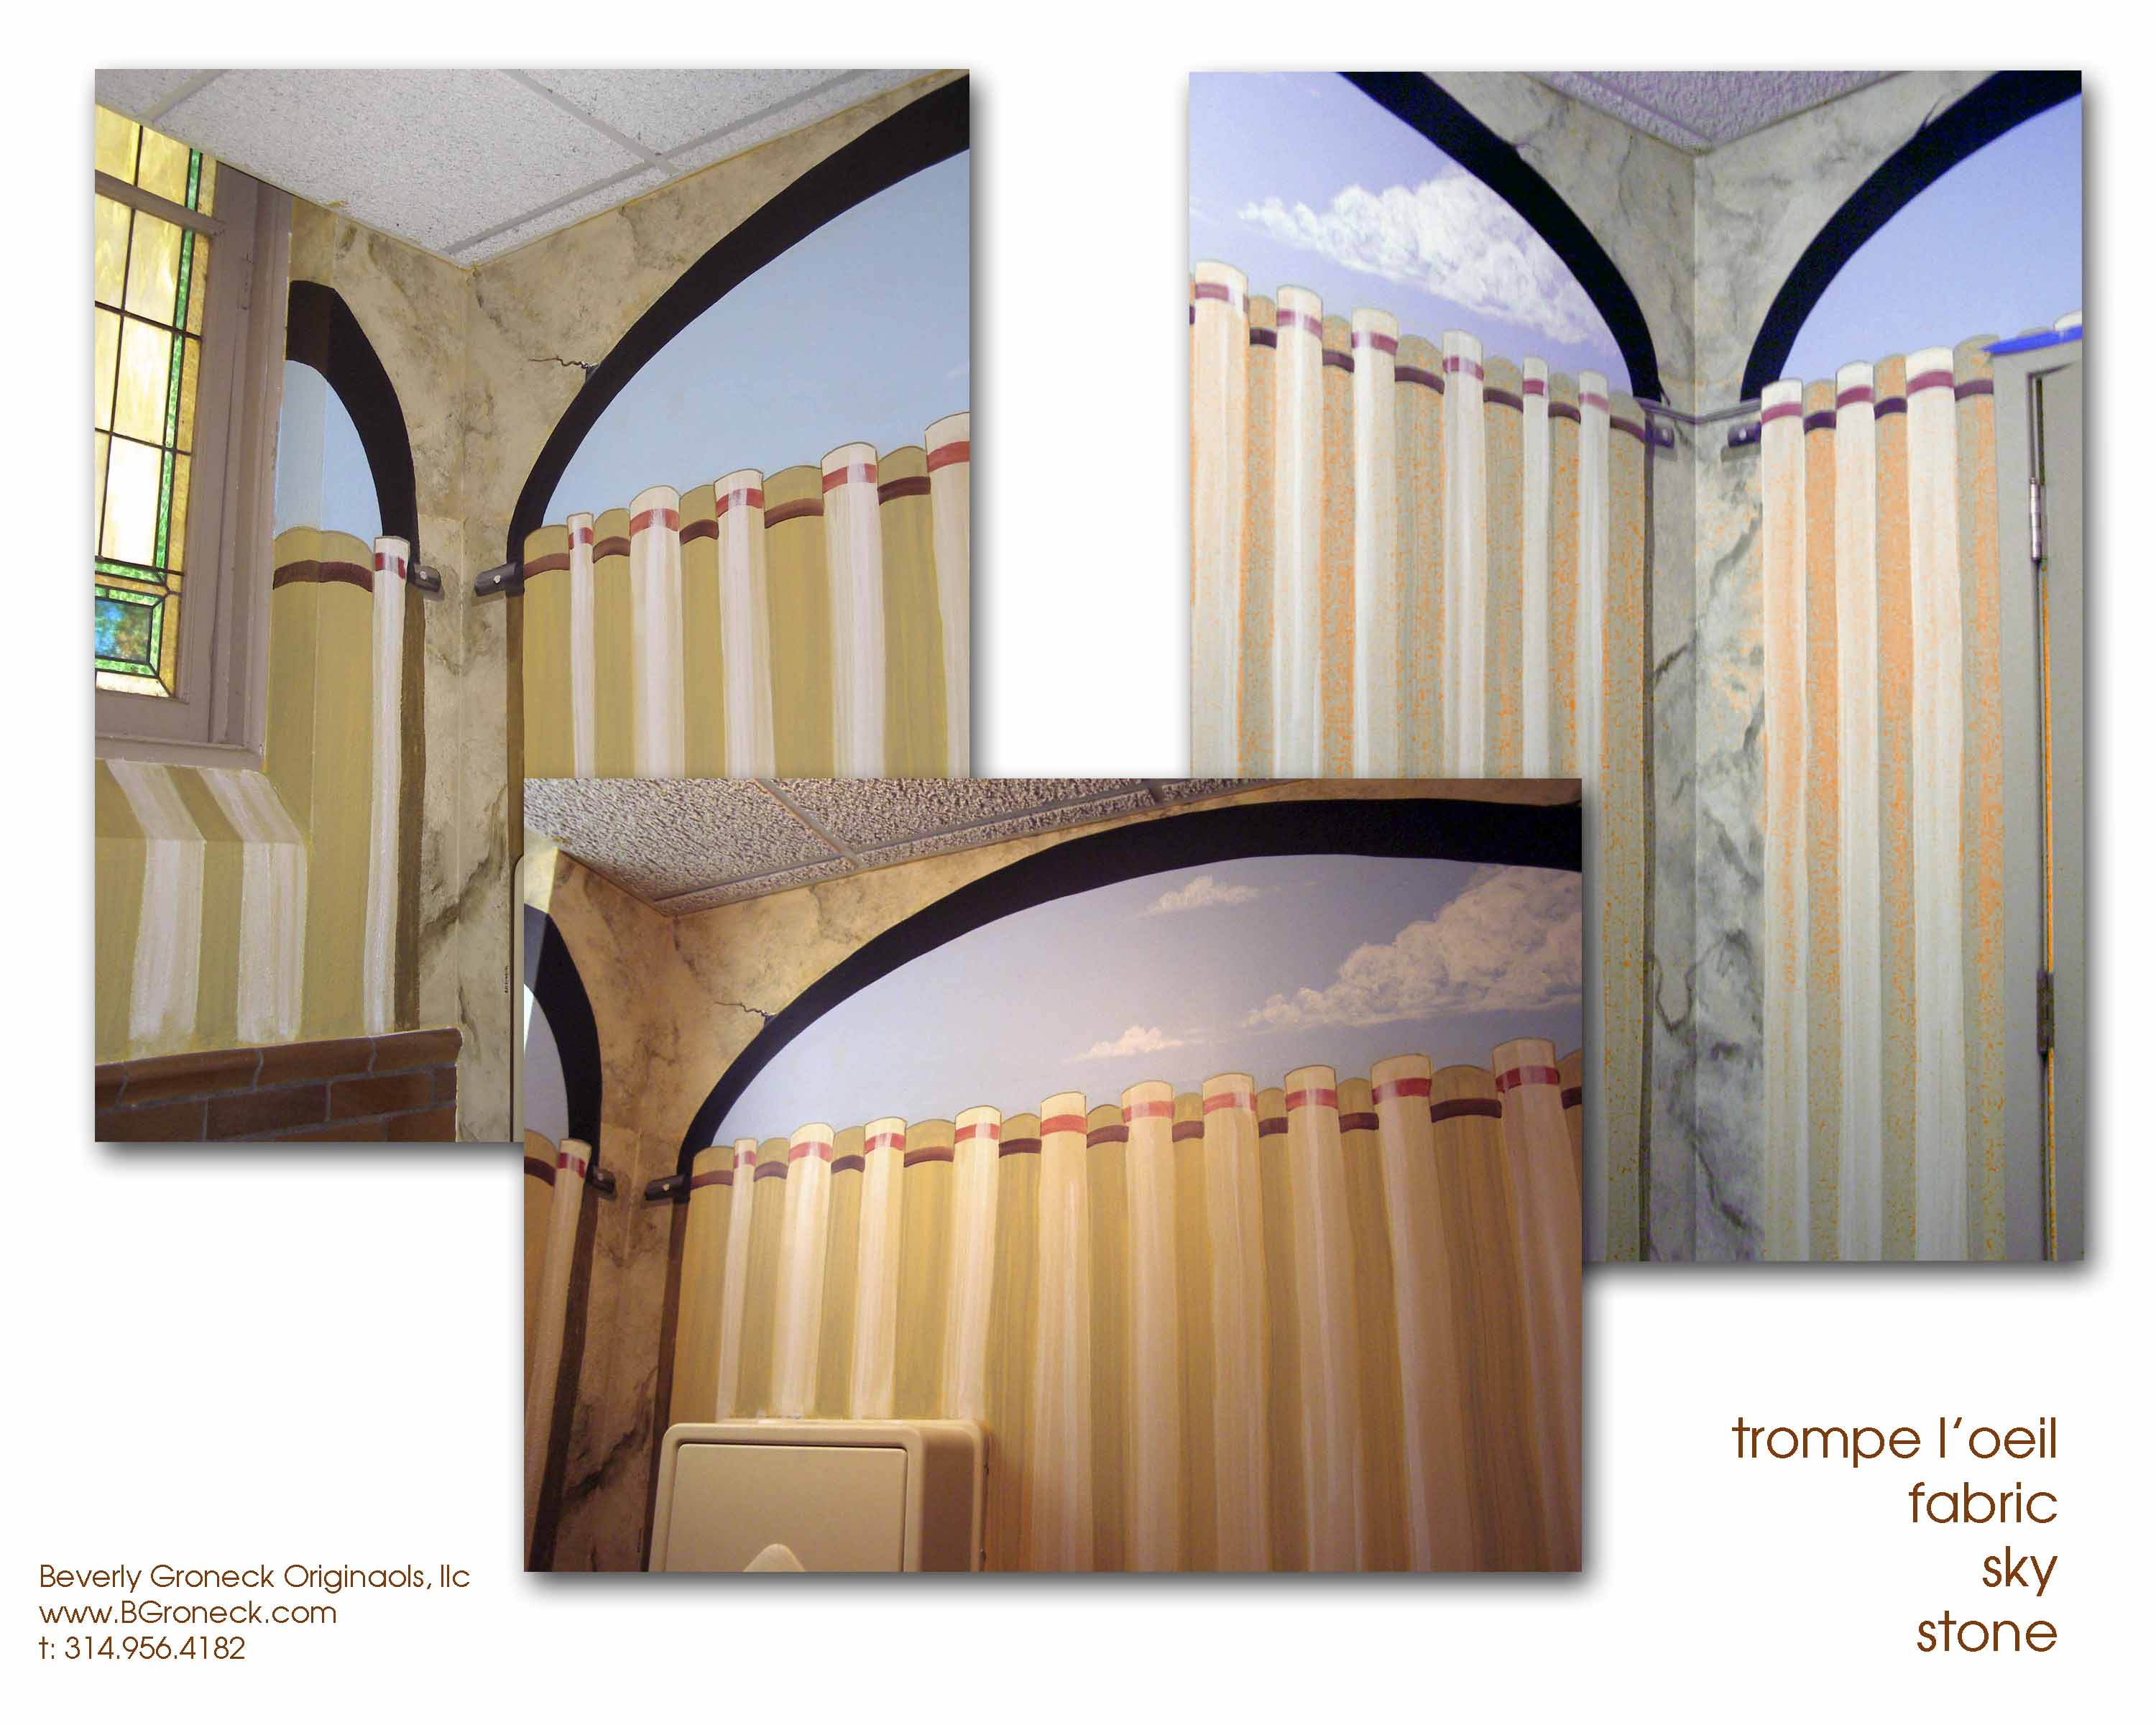 St. Charles Borromeo Church - curtain walls